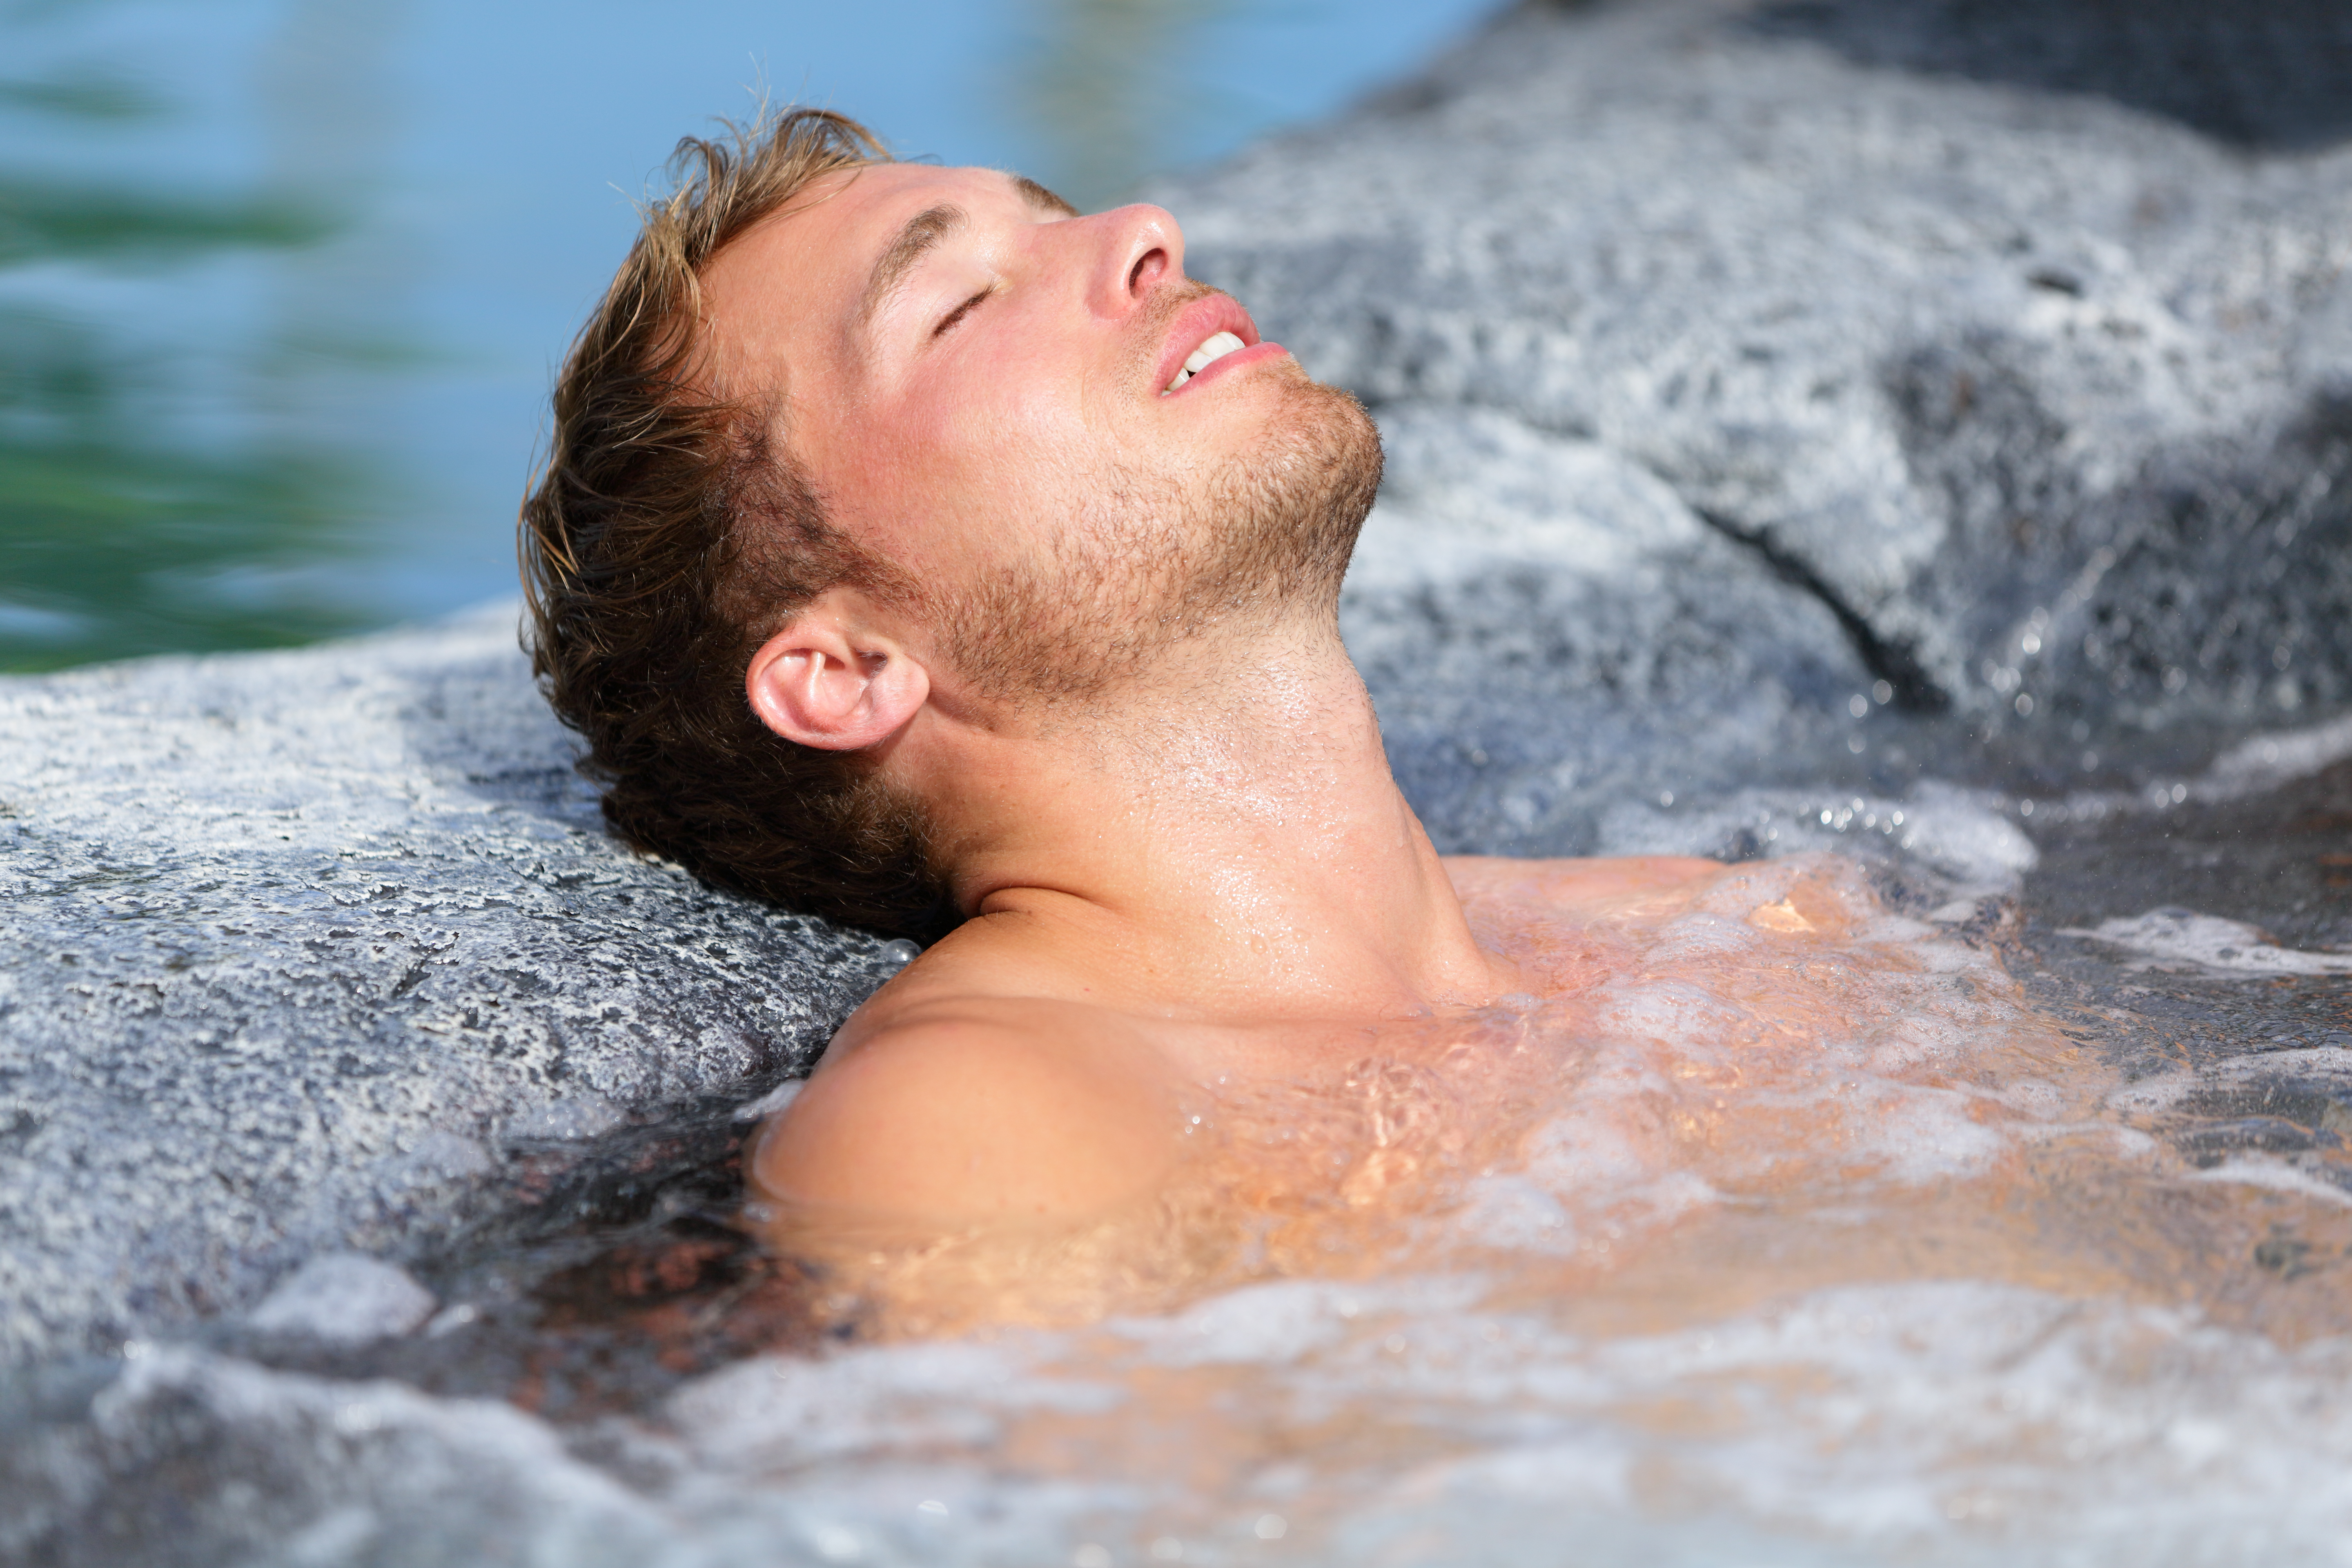 The Top 3 Non-Mechanical Hot Tub Water Issues and How to Prevent Them